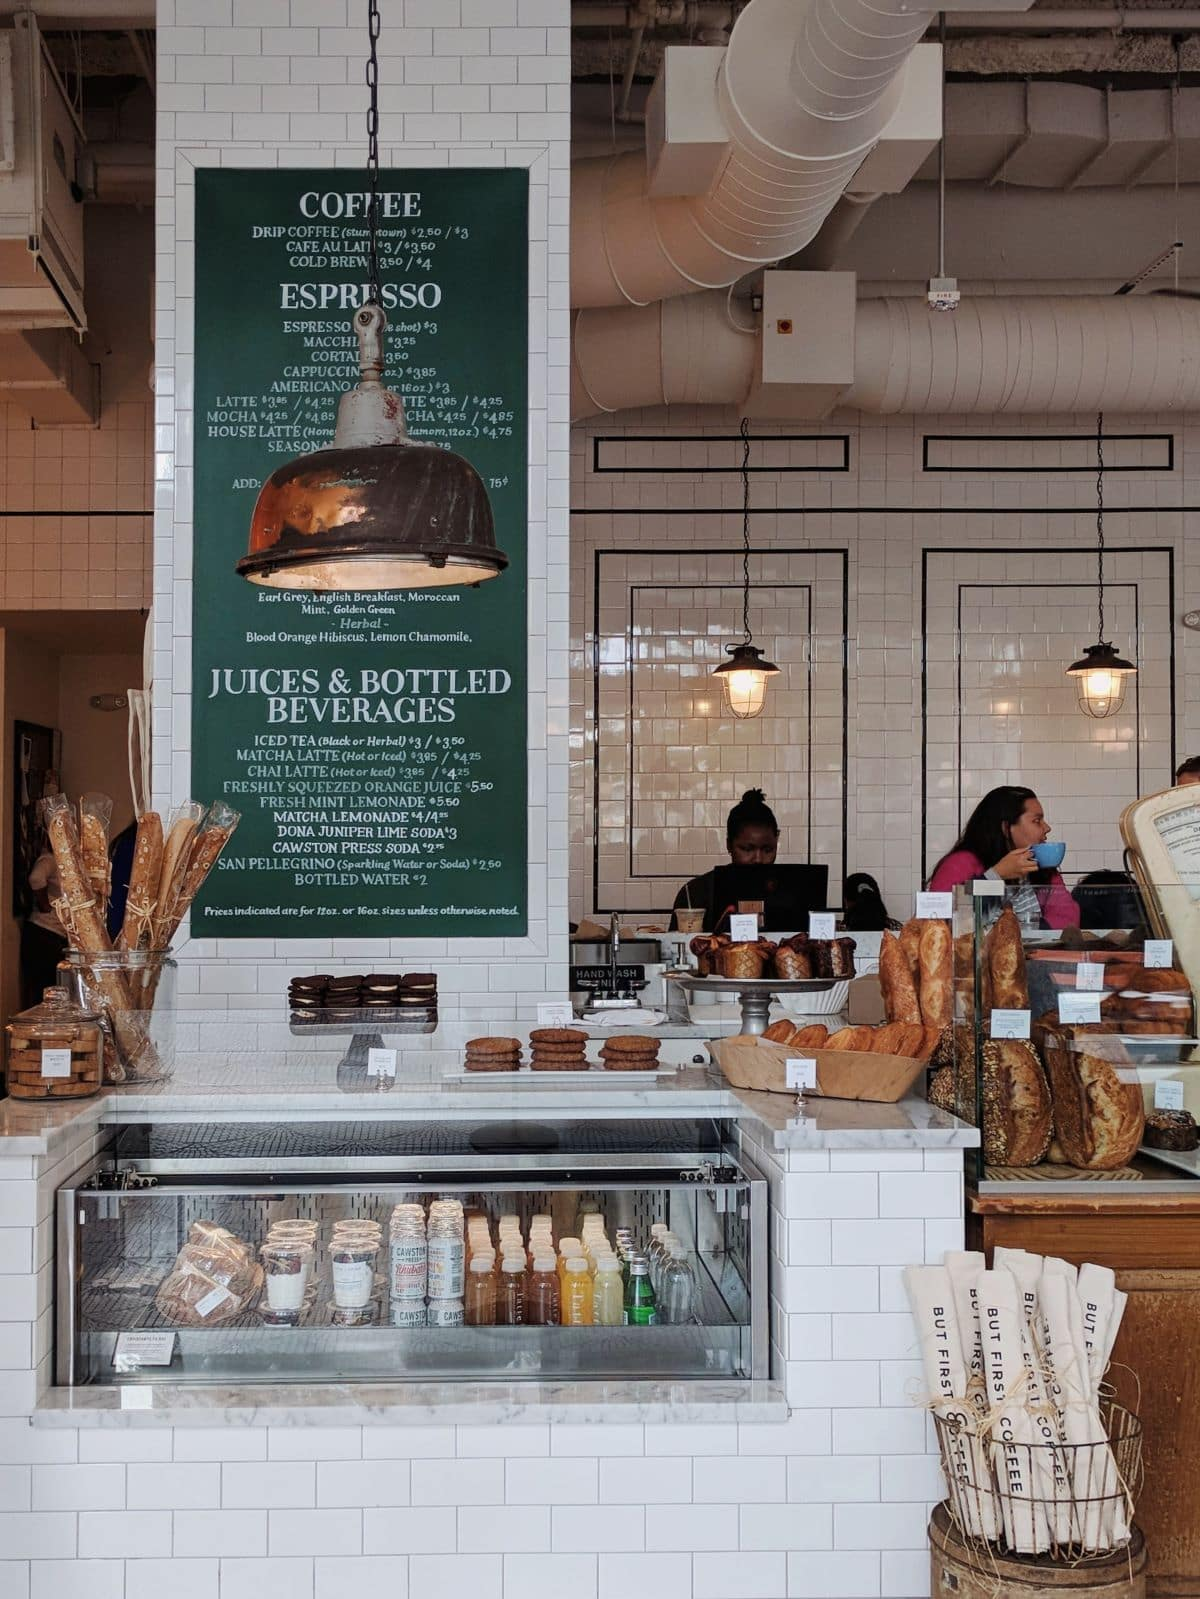 Tatte Bakery counter with baguettes, pastries, and hanging lamps